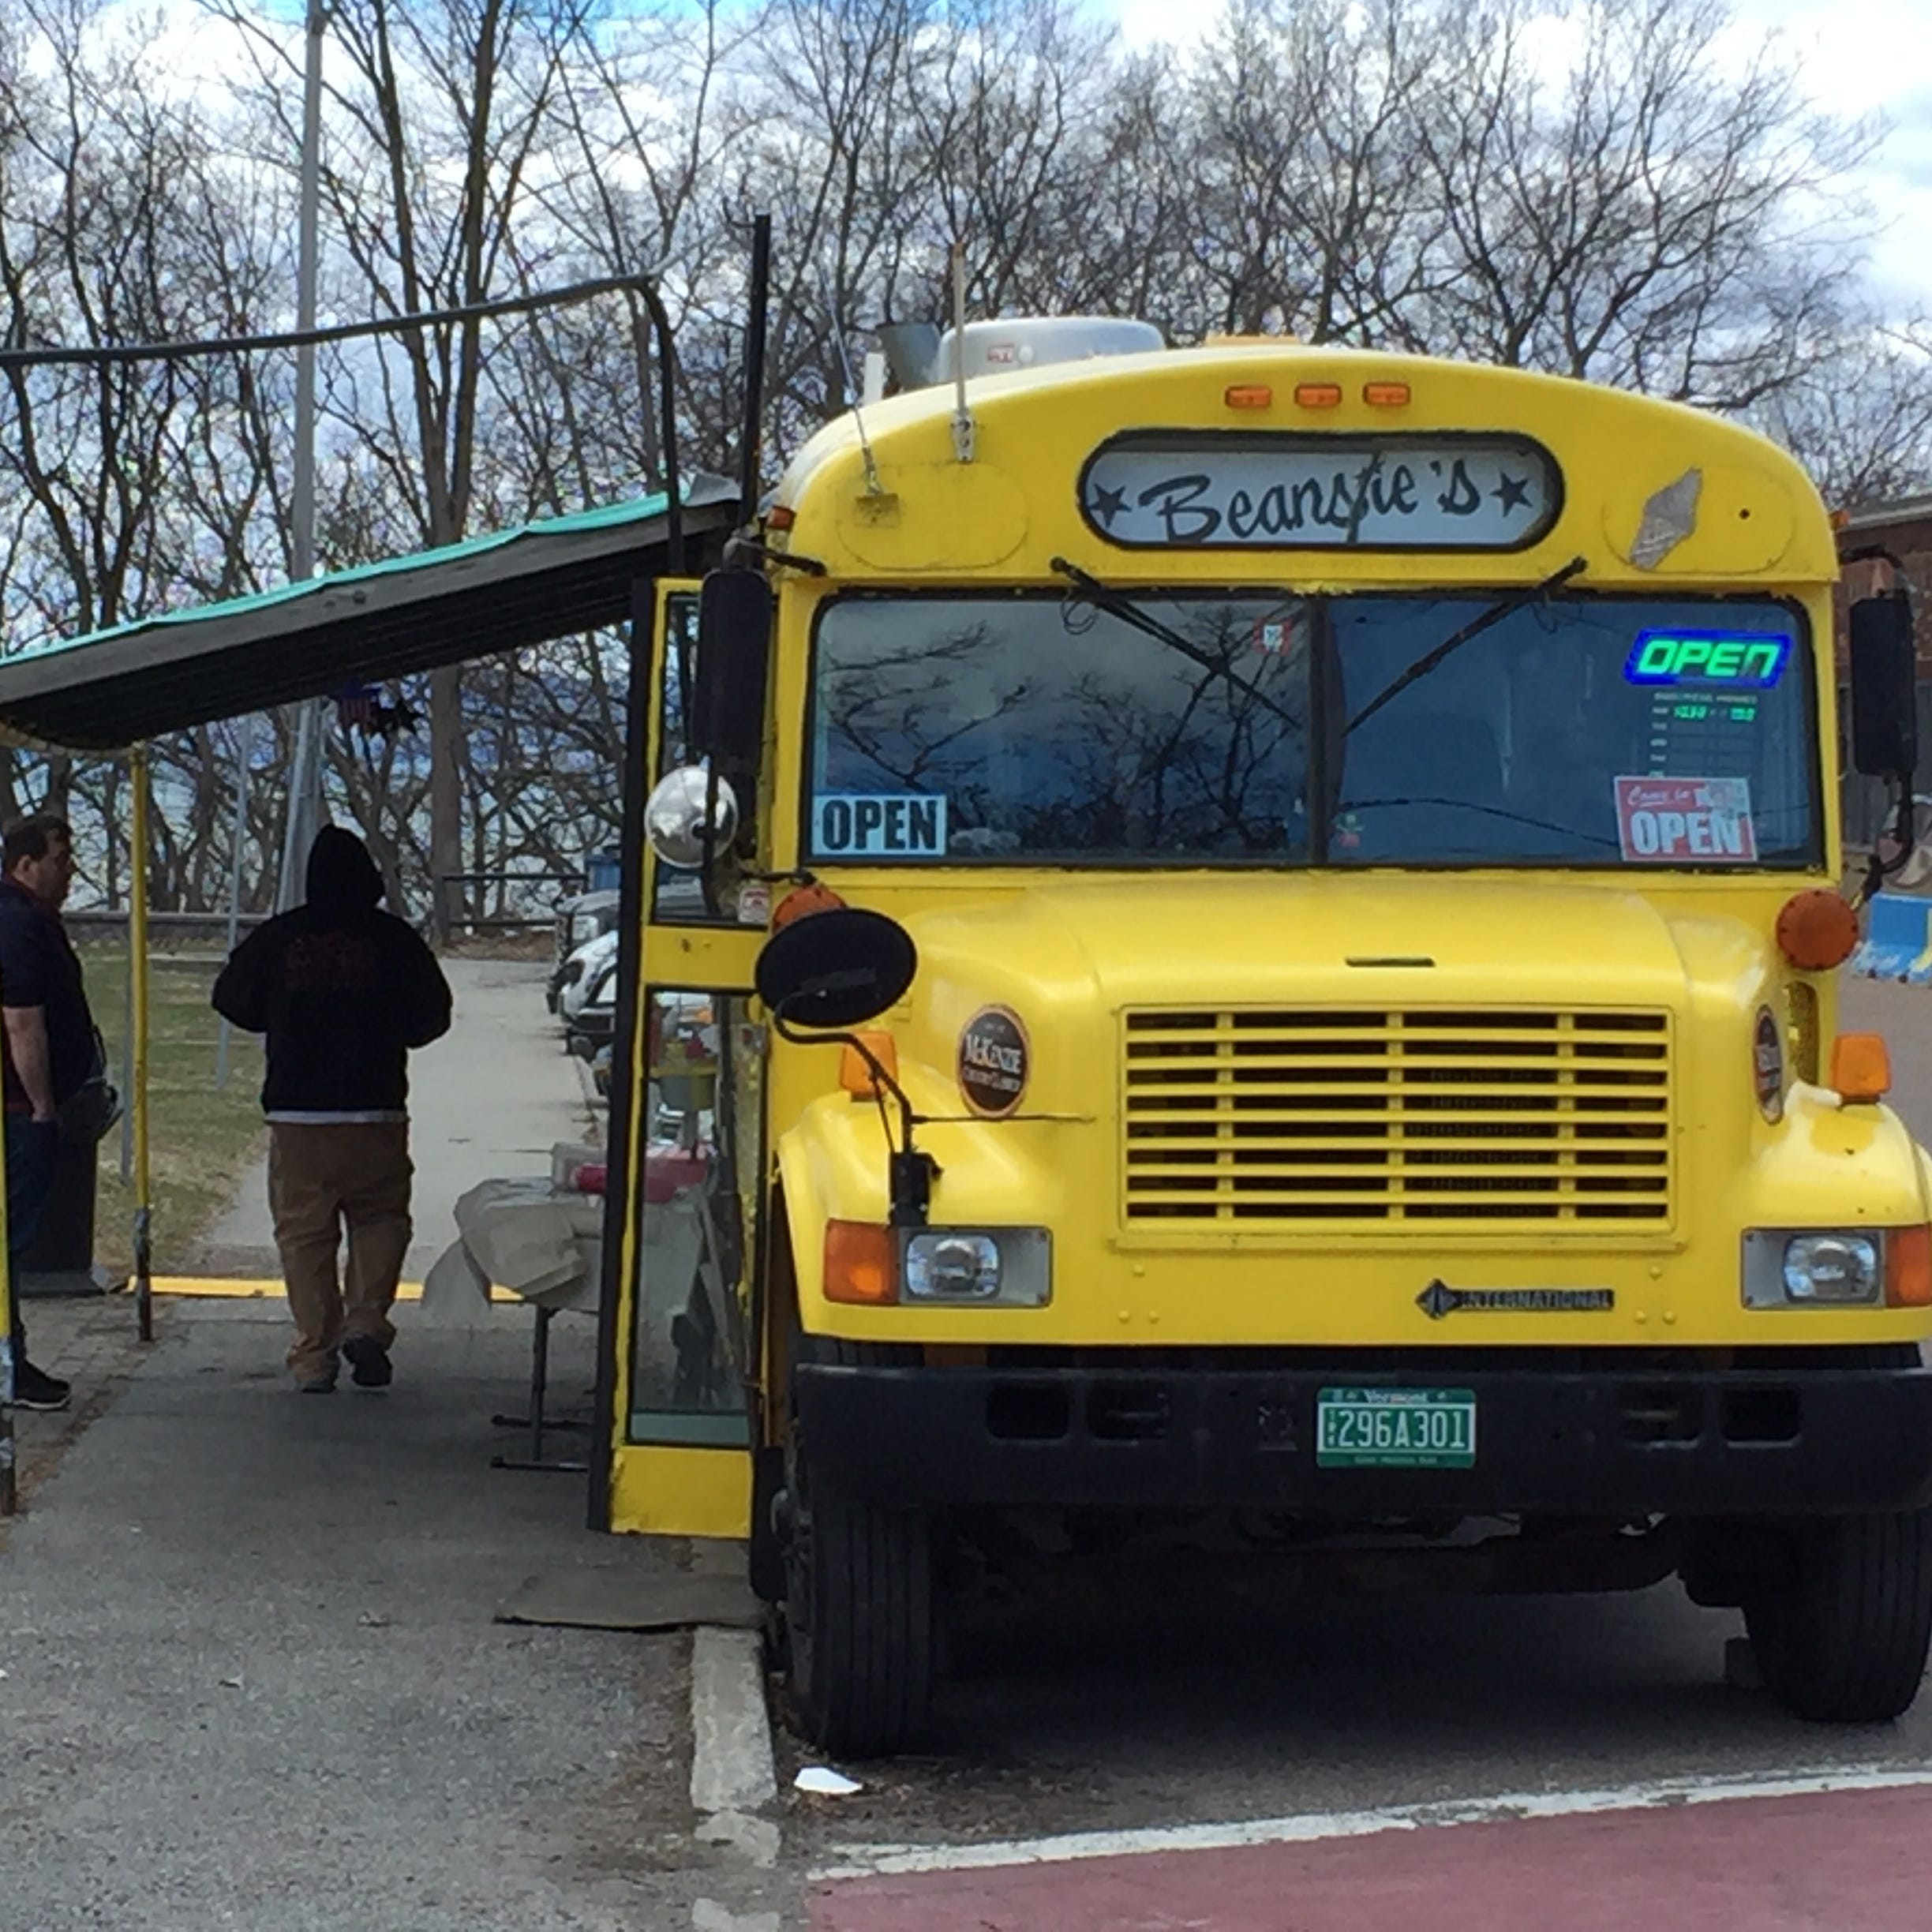 The bus is back: Beansie's returns to Battery Park to mark its 75th anniversary